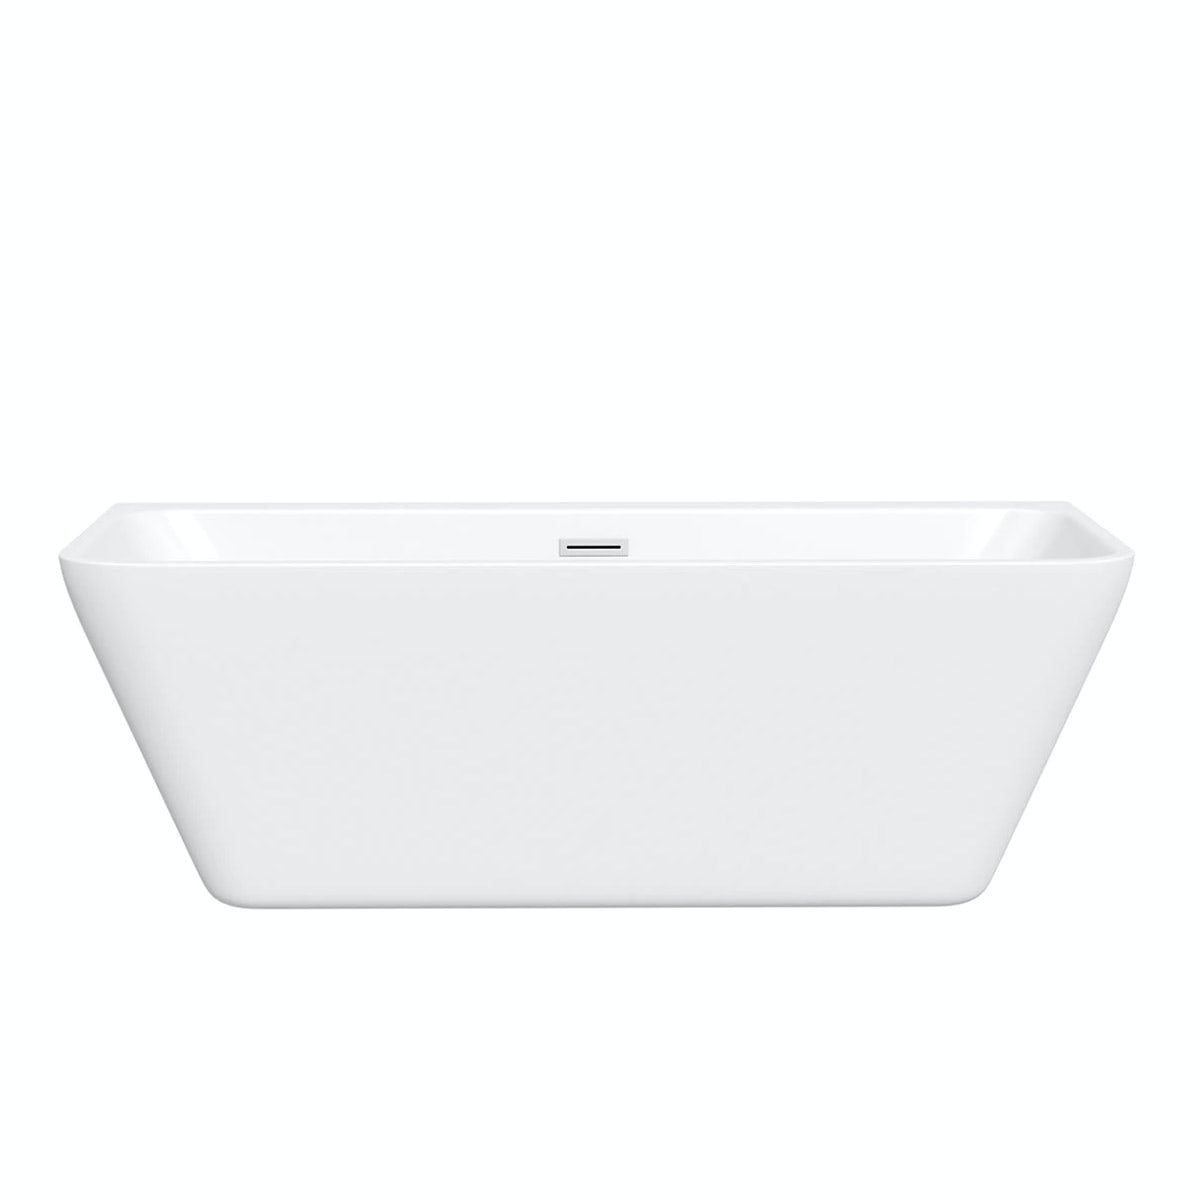 Mode Carter back to wall bath offer pack